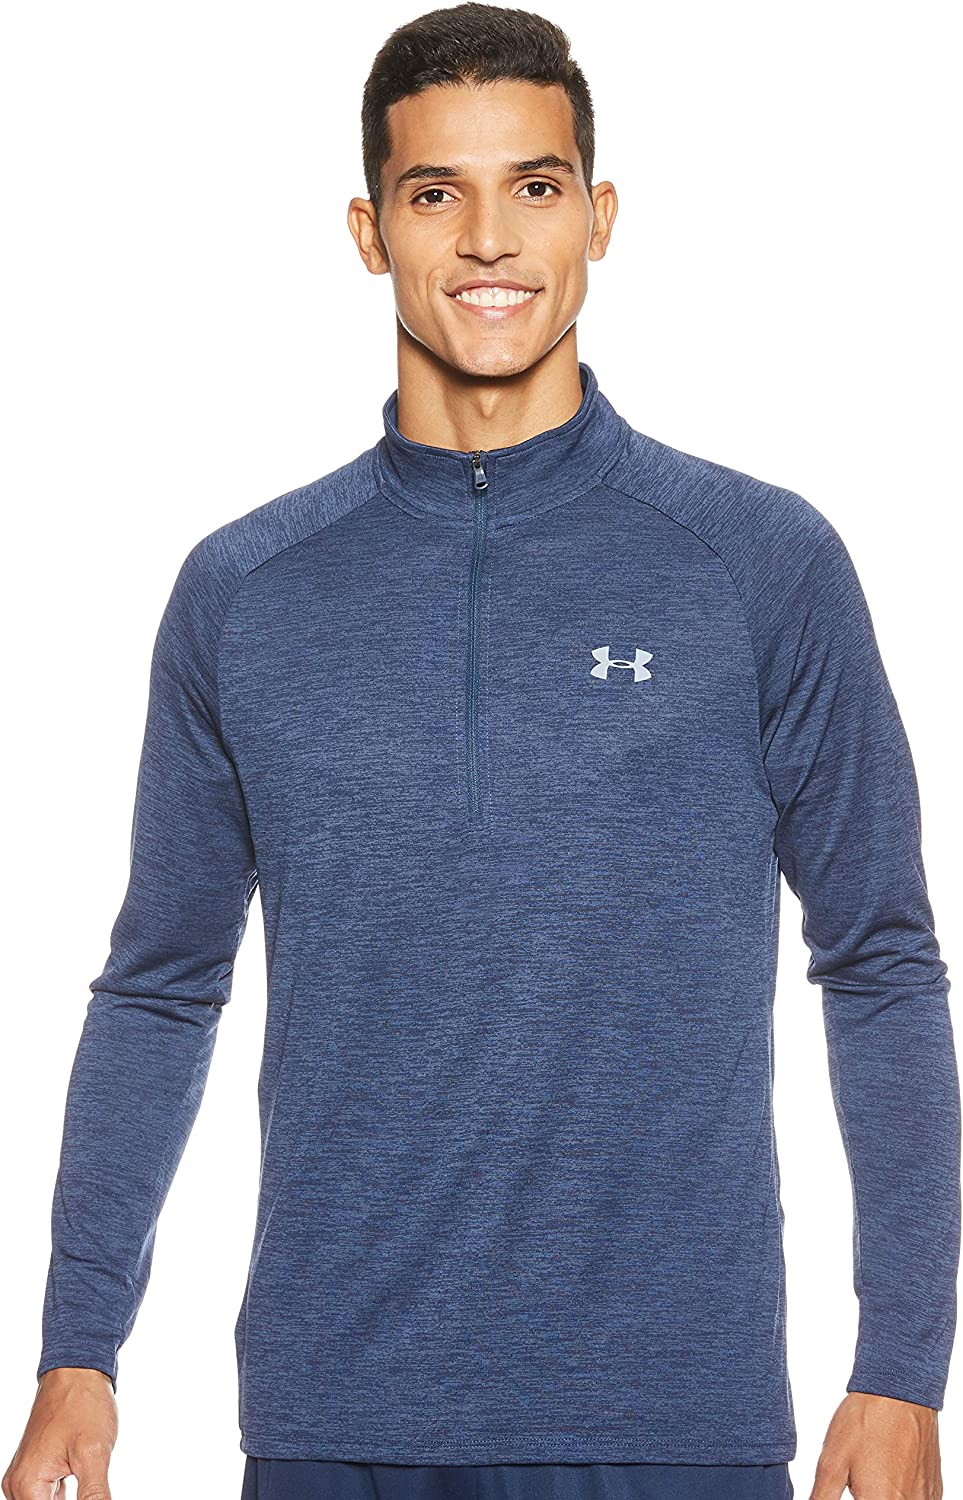 Under Armour Men's Tech 2.0 1/2 Zip-Up: Clothing